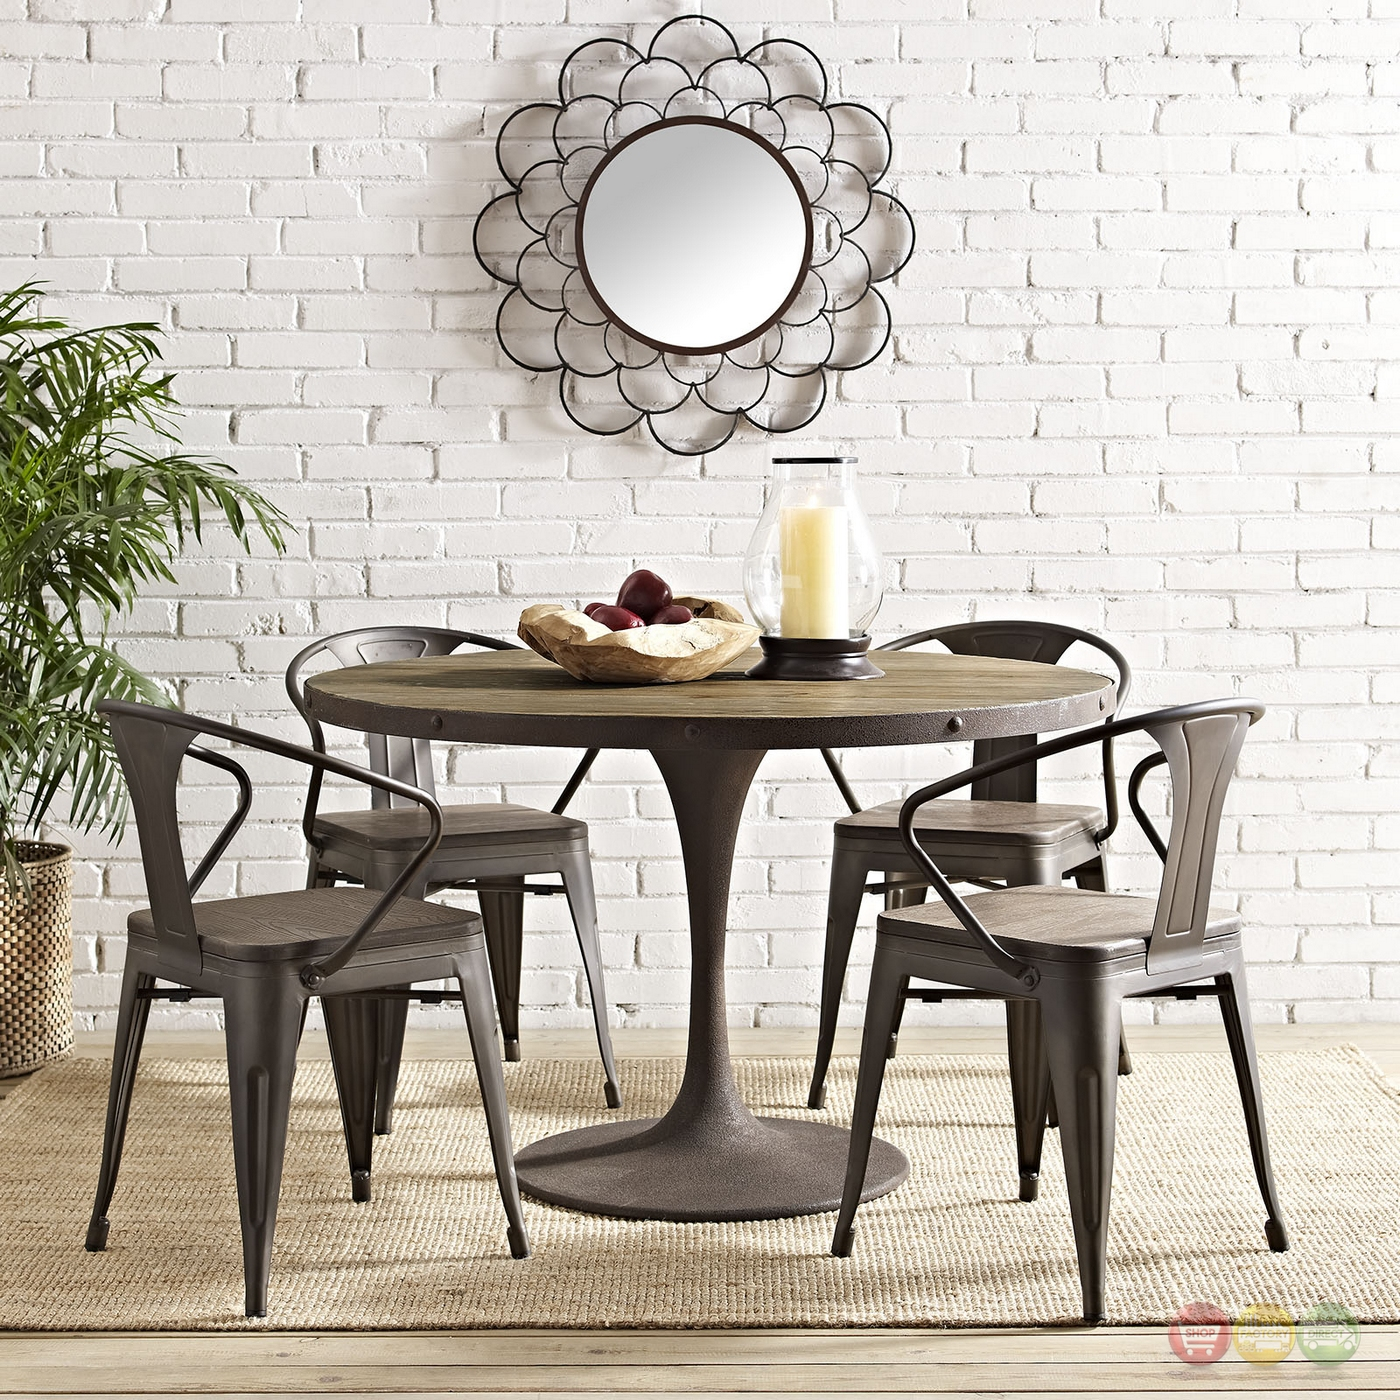 drive rustic 48 round wood top dining table w iron. Black Bedroom Furniture Sets. Home Design Ideas